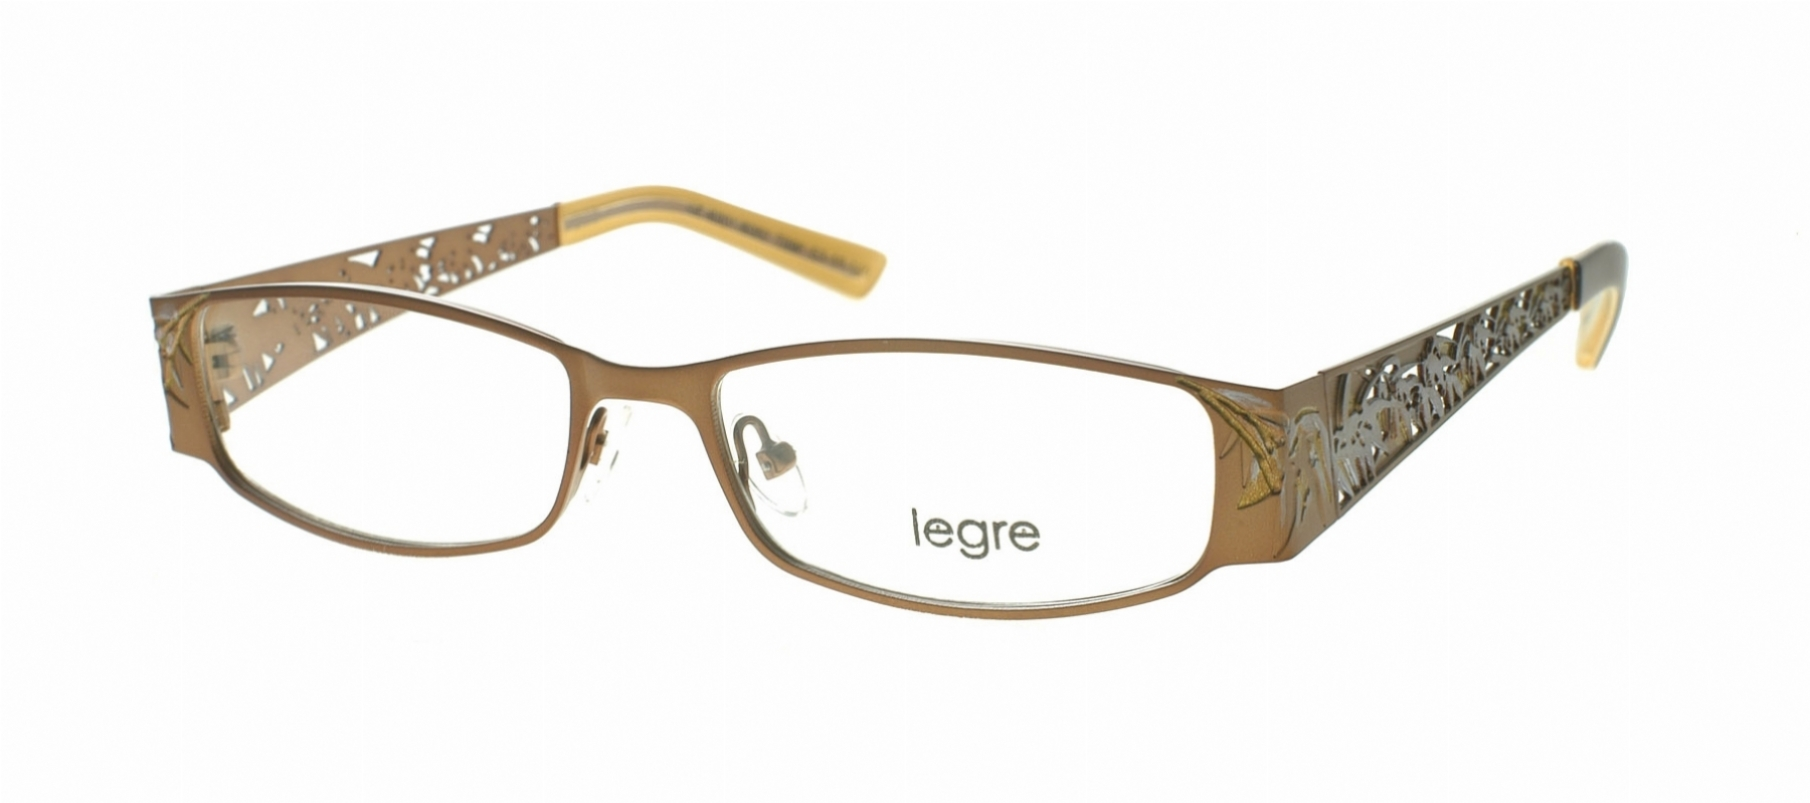 1cbb3d9525 Buy Legre Eyeglasses directly from OpticsFast.com